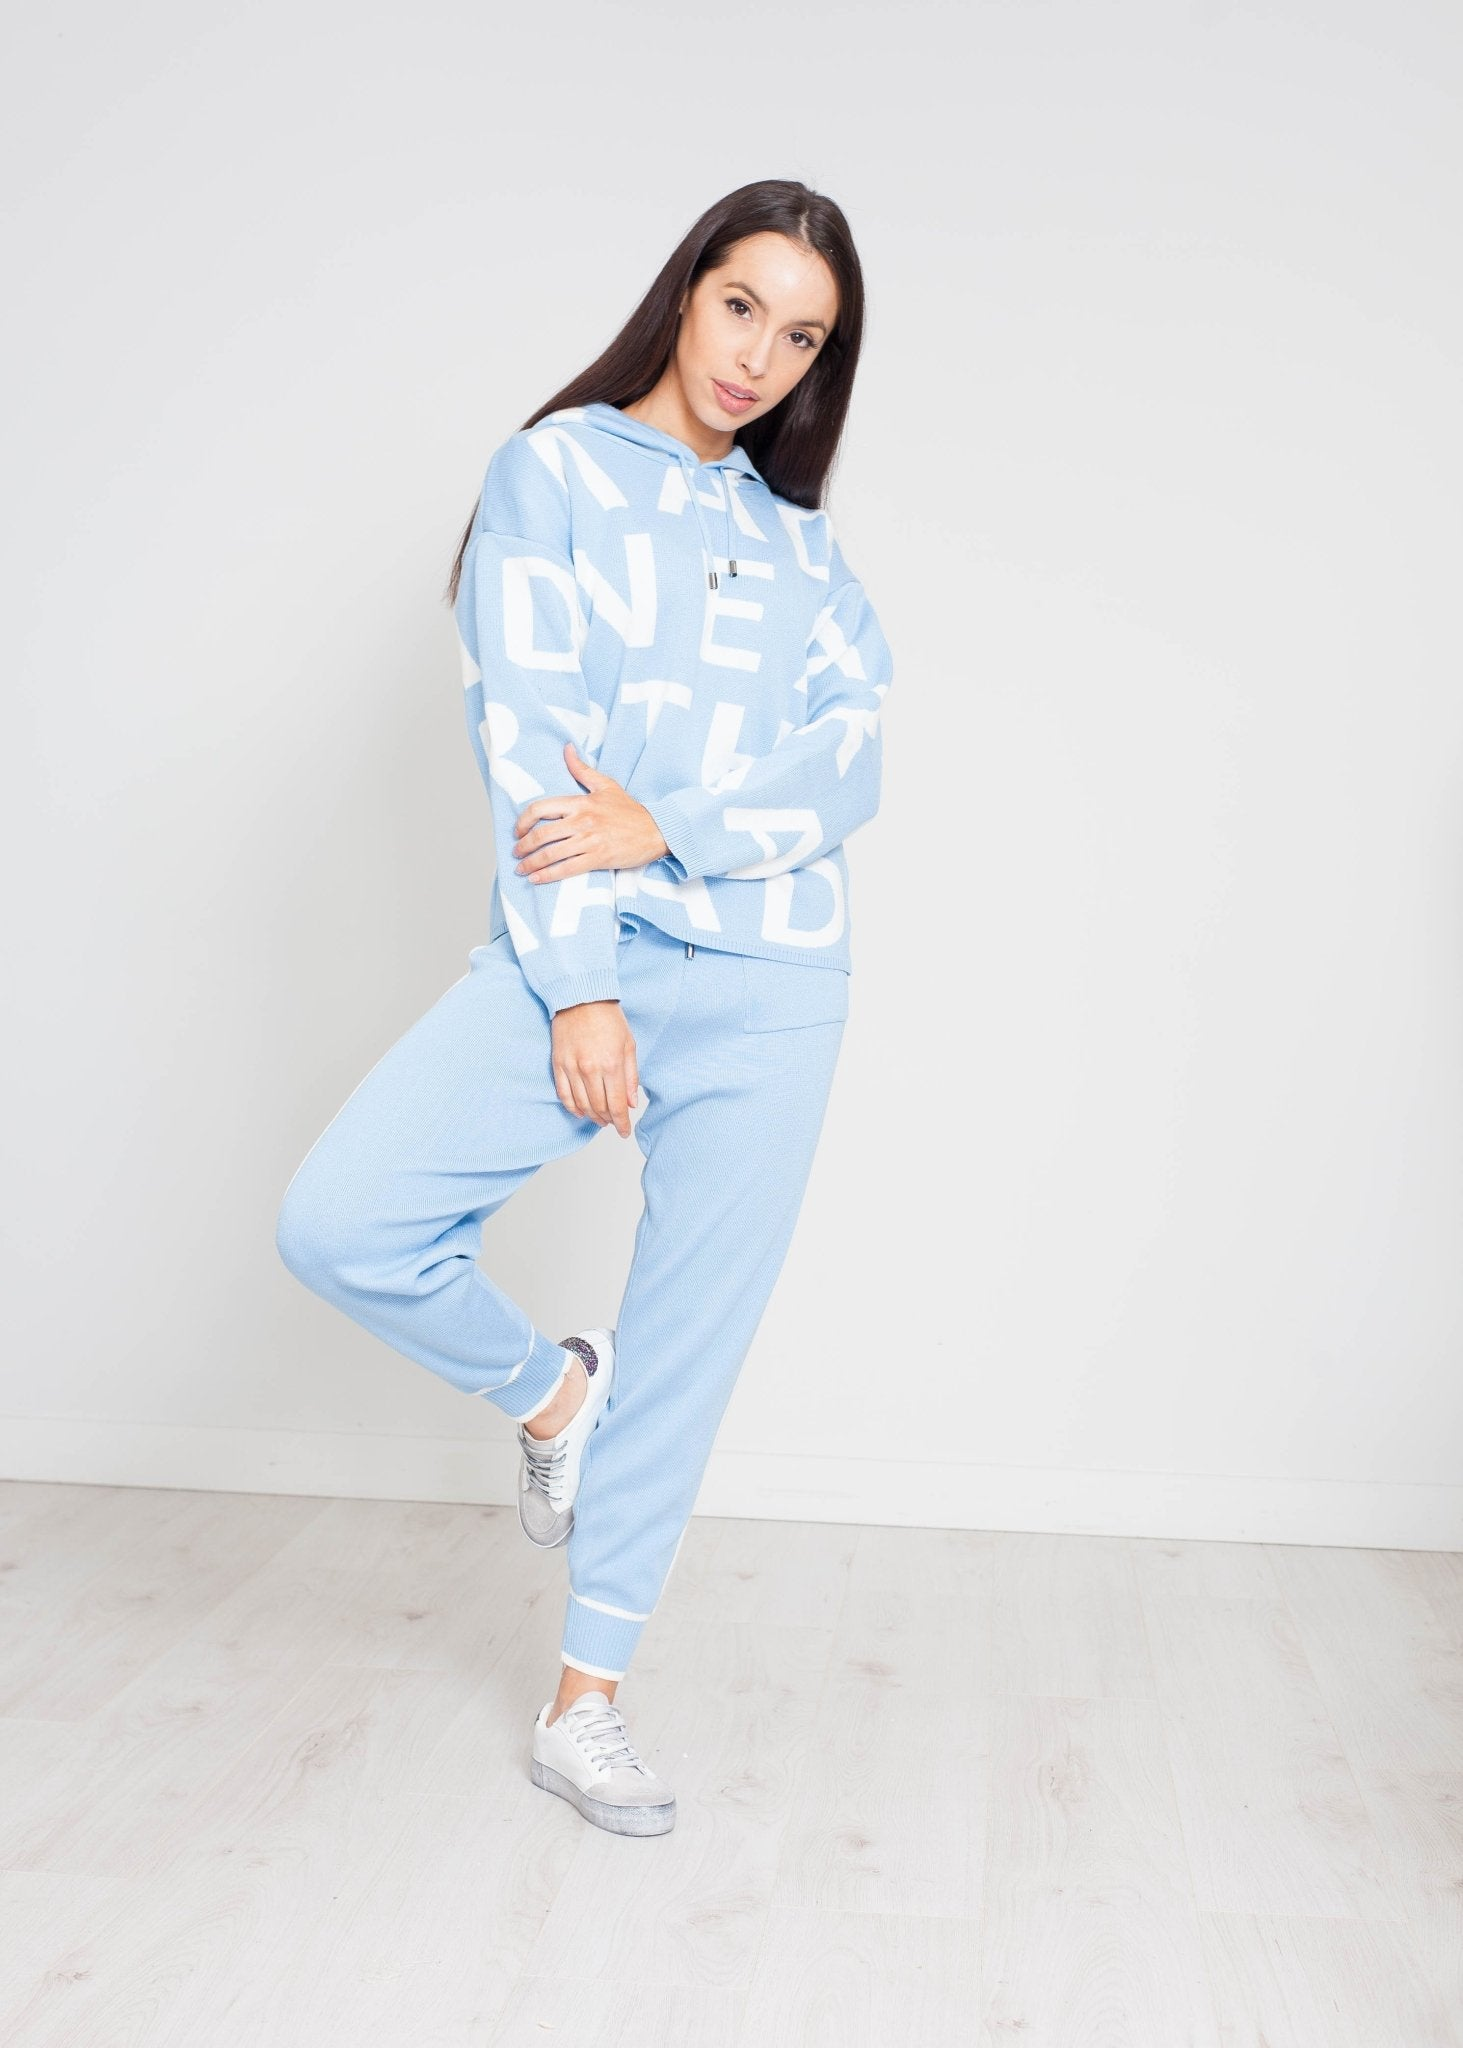 Samantha Alphabet Lounge Set In Blue - The Walk in Wardrobe